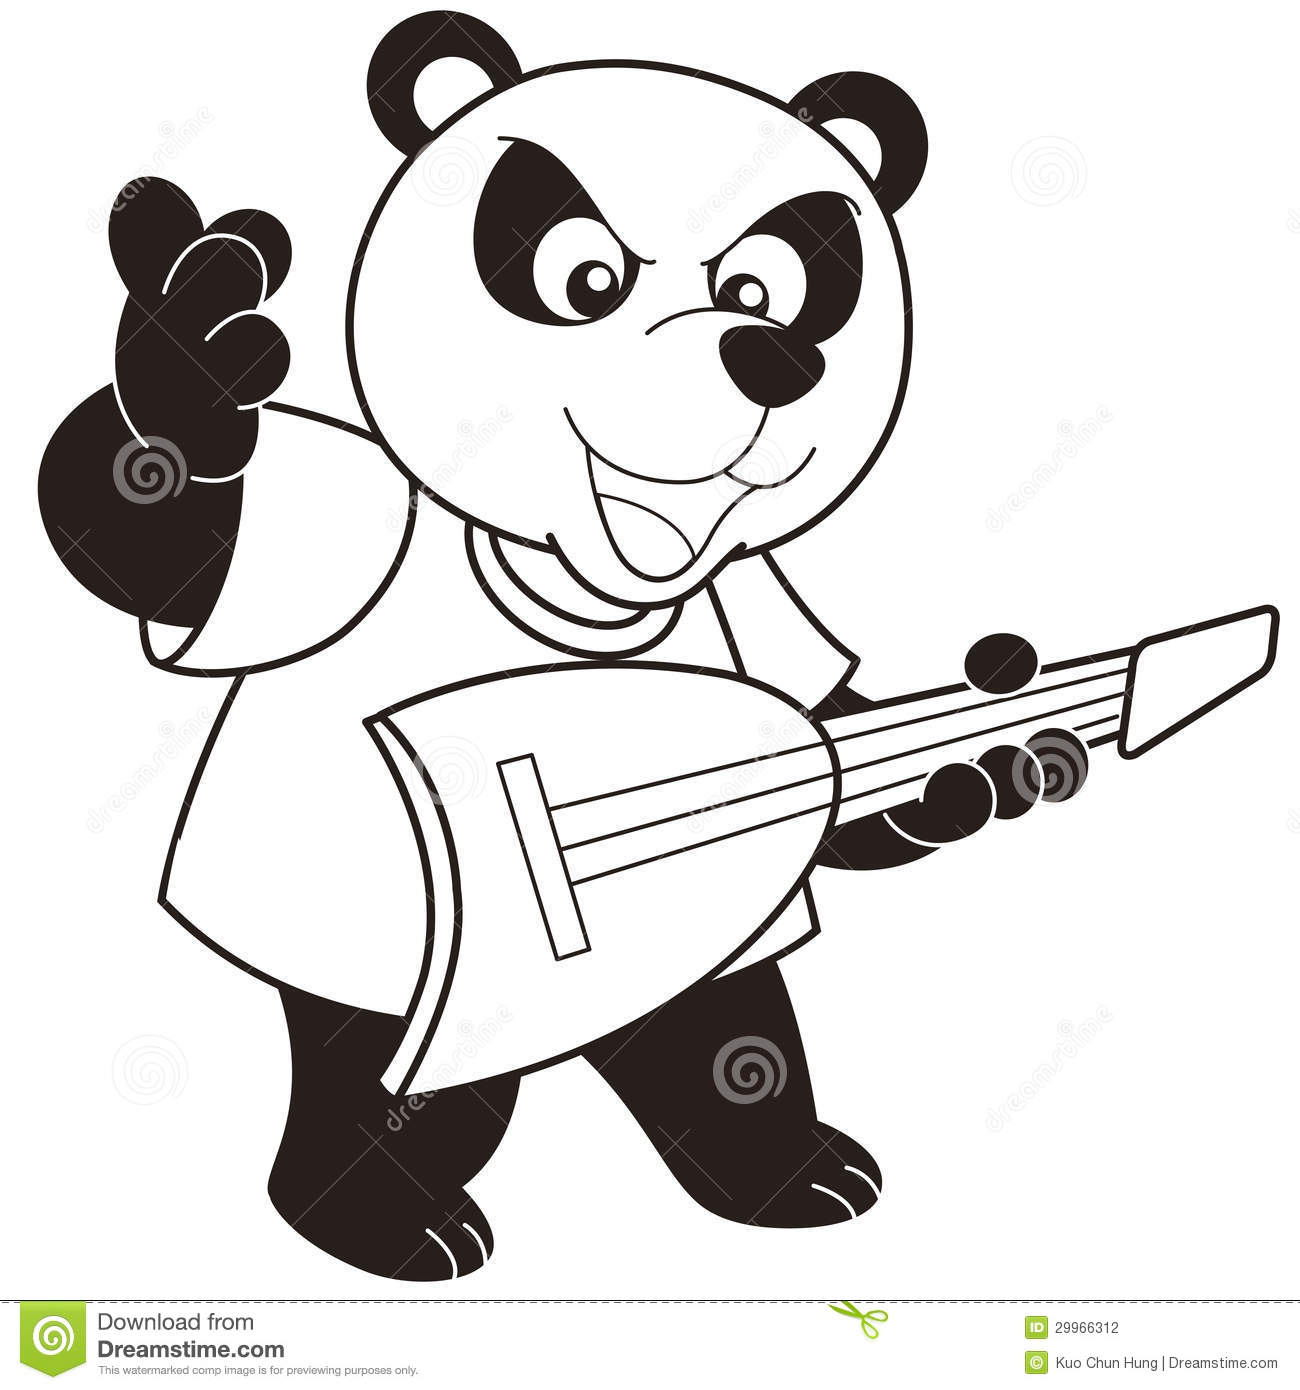 Cartoon Panda Playing An Electric Guitar Stock Vector